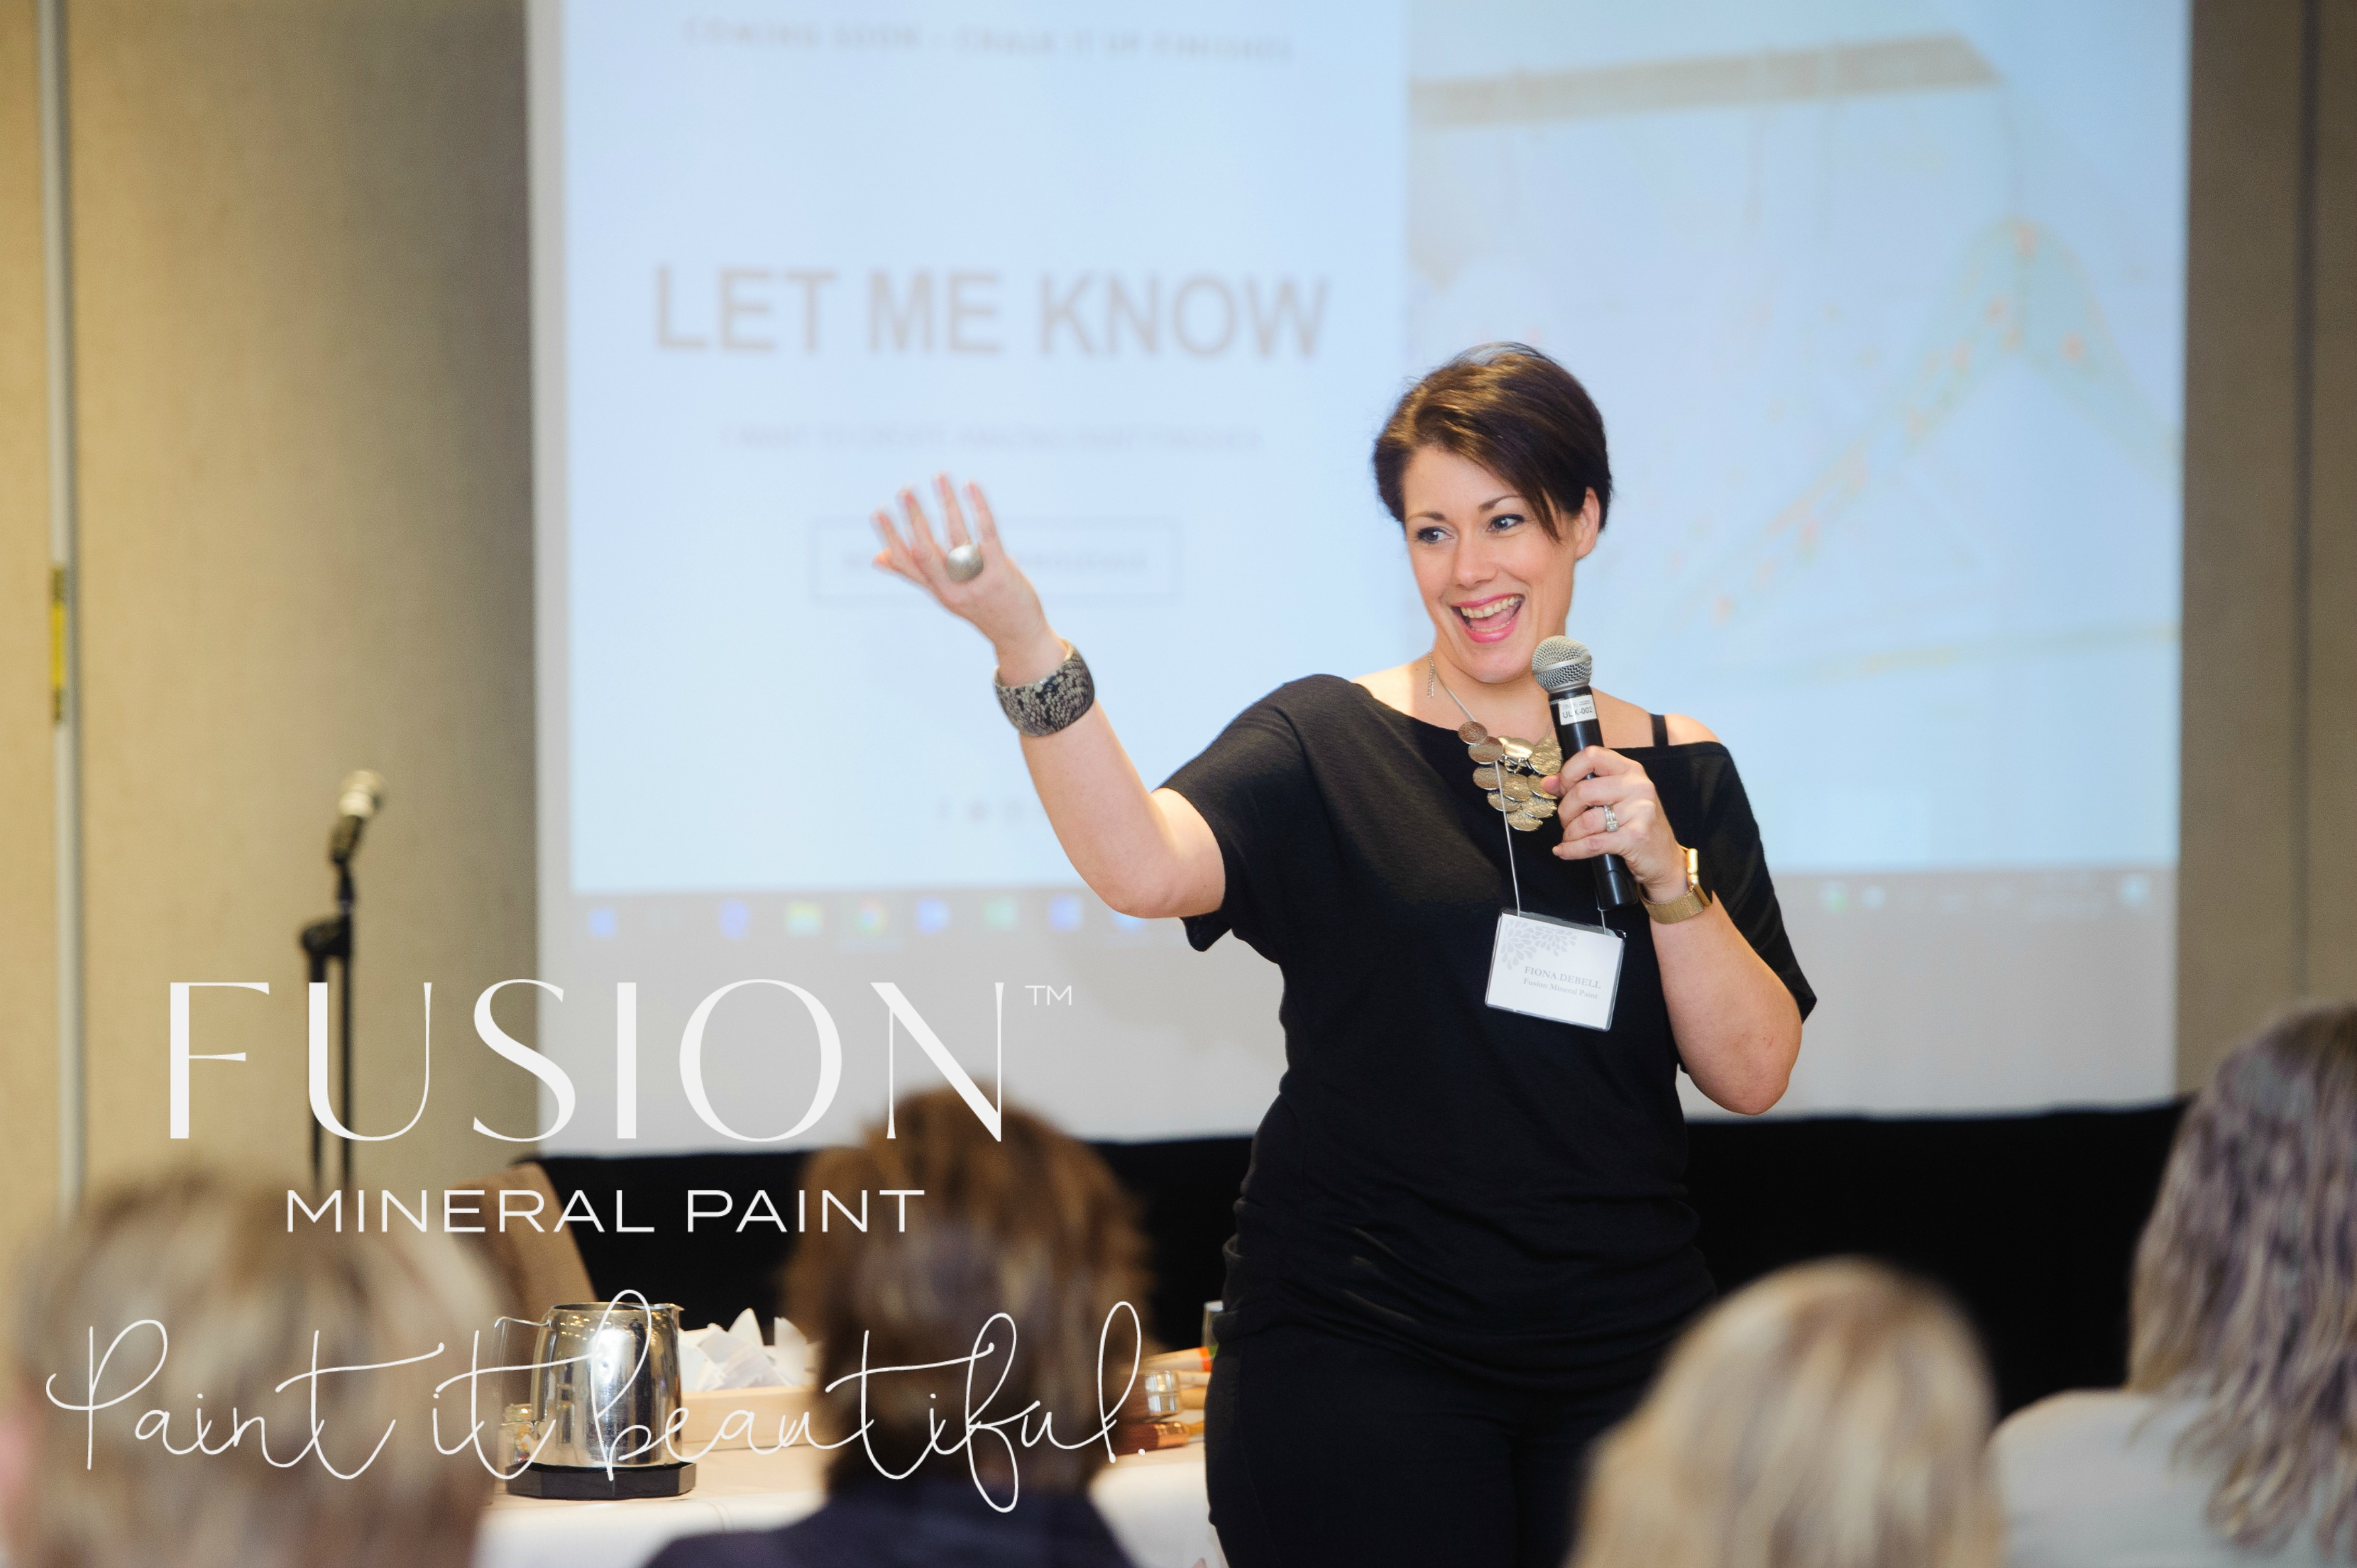 Educator Fiona DeBell for Fusion Mineral Paint Merchant Conference and Retreat at Adamo Winery and Hockley Valley Resort and Spa. Become a Retailer today and enjoy these fabulous Merchant only benefits!